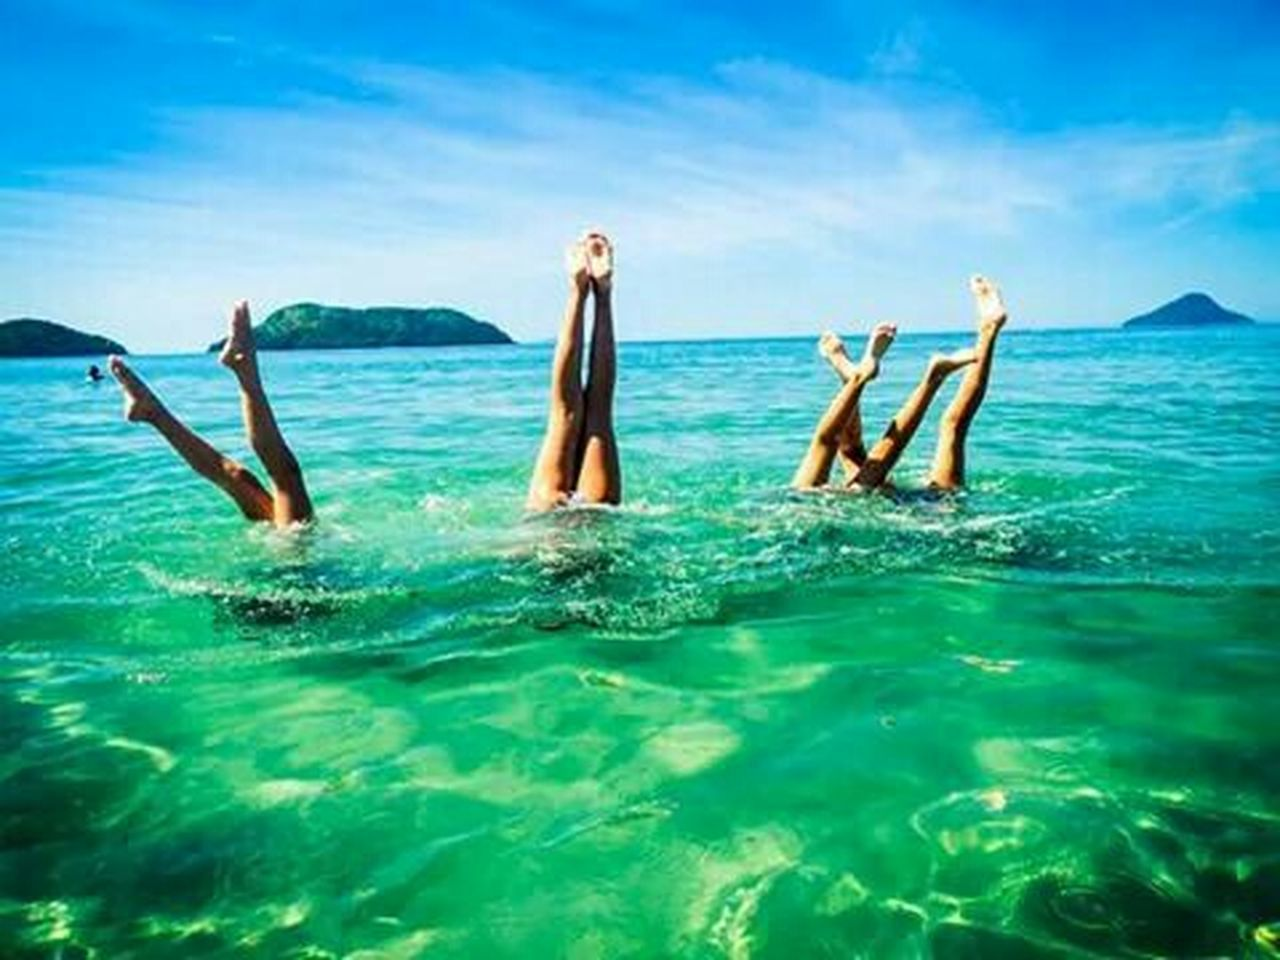 fun, vacations, blue, summer, sea, enjoyment, females, nature, people, leisure activity, outdoors, sky, relaxation, beauty, togetherness, beauty in nature, day, party - social event, beach, cheerful, adult, human body part, women, water, happiness, beautiful people, young adult, swimming pool, friendship, adults only